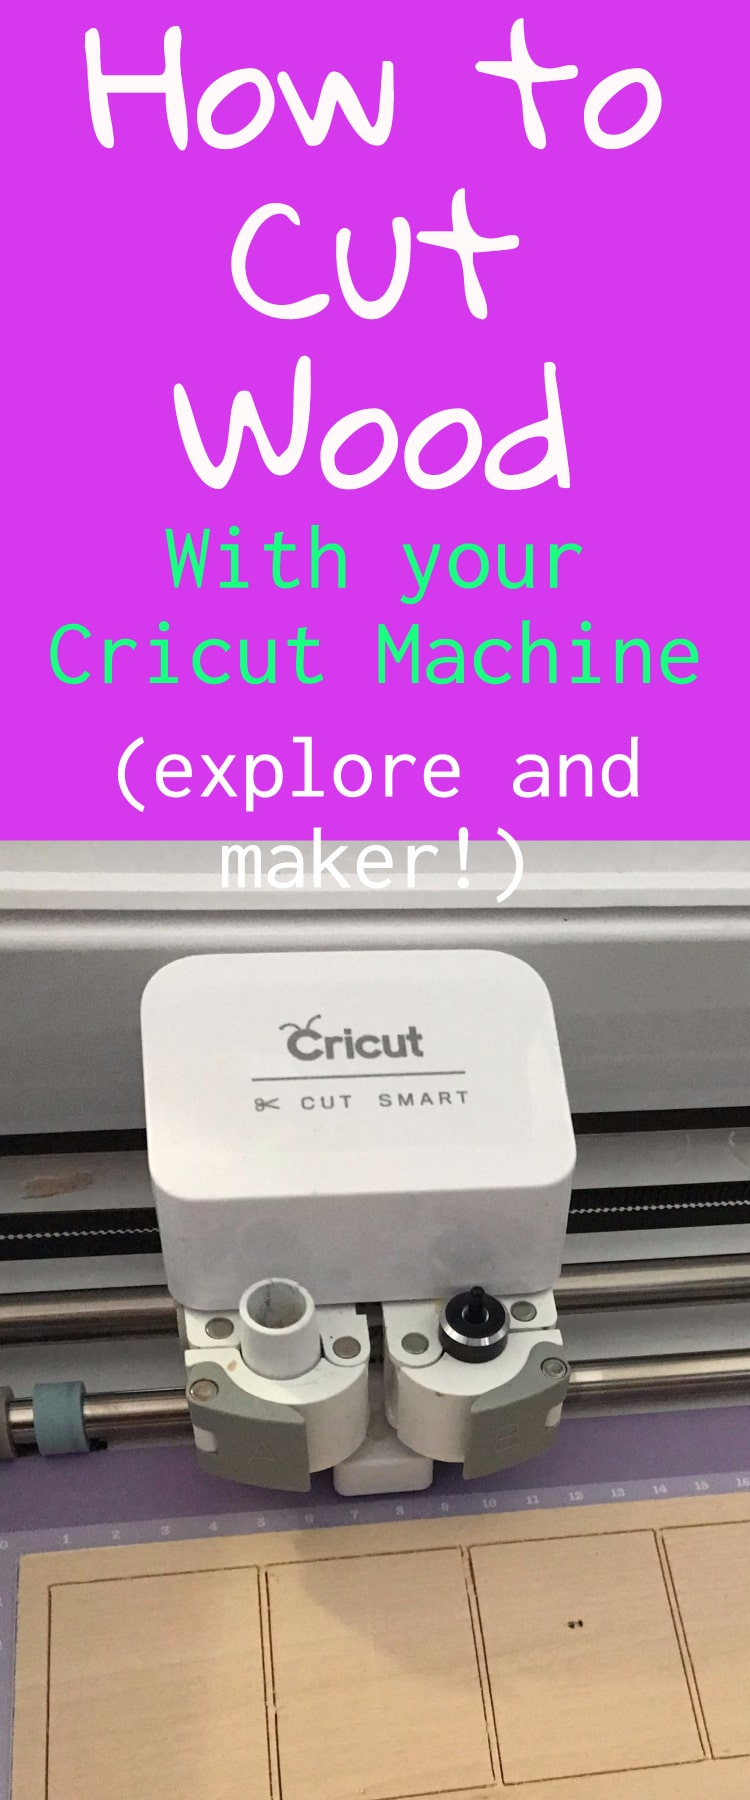 How To Cut Wood With Cricut Explore And Cricut Maker Clarks Condensed